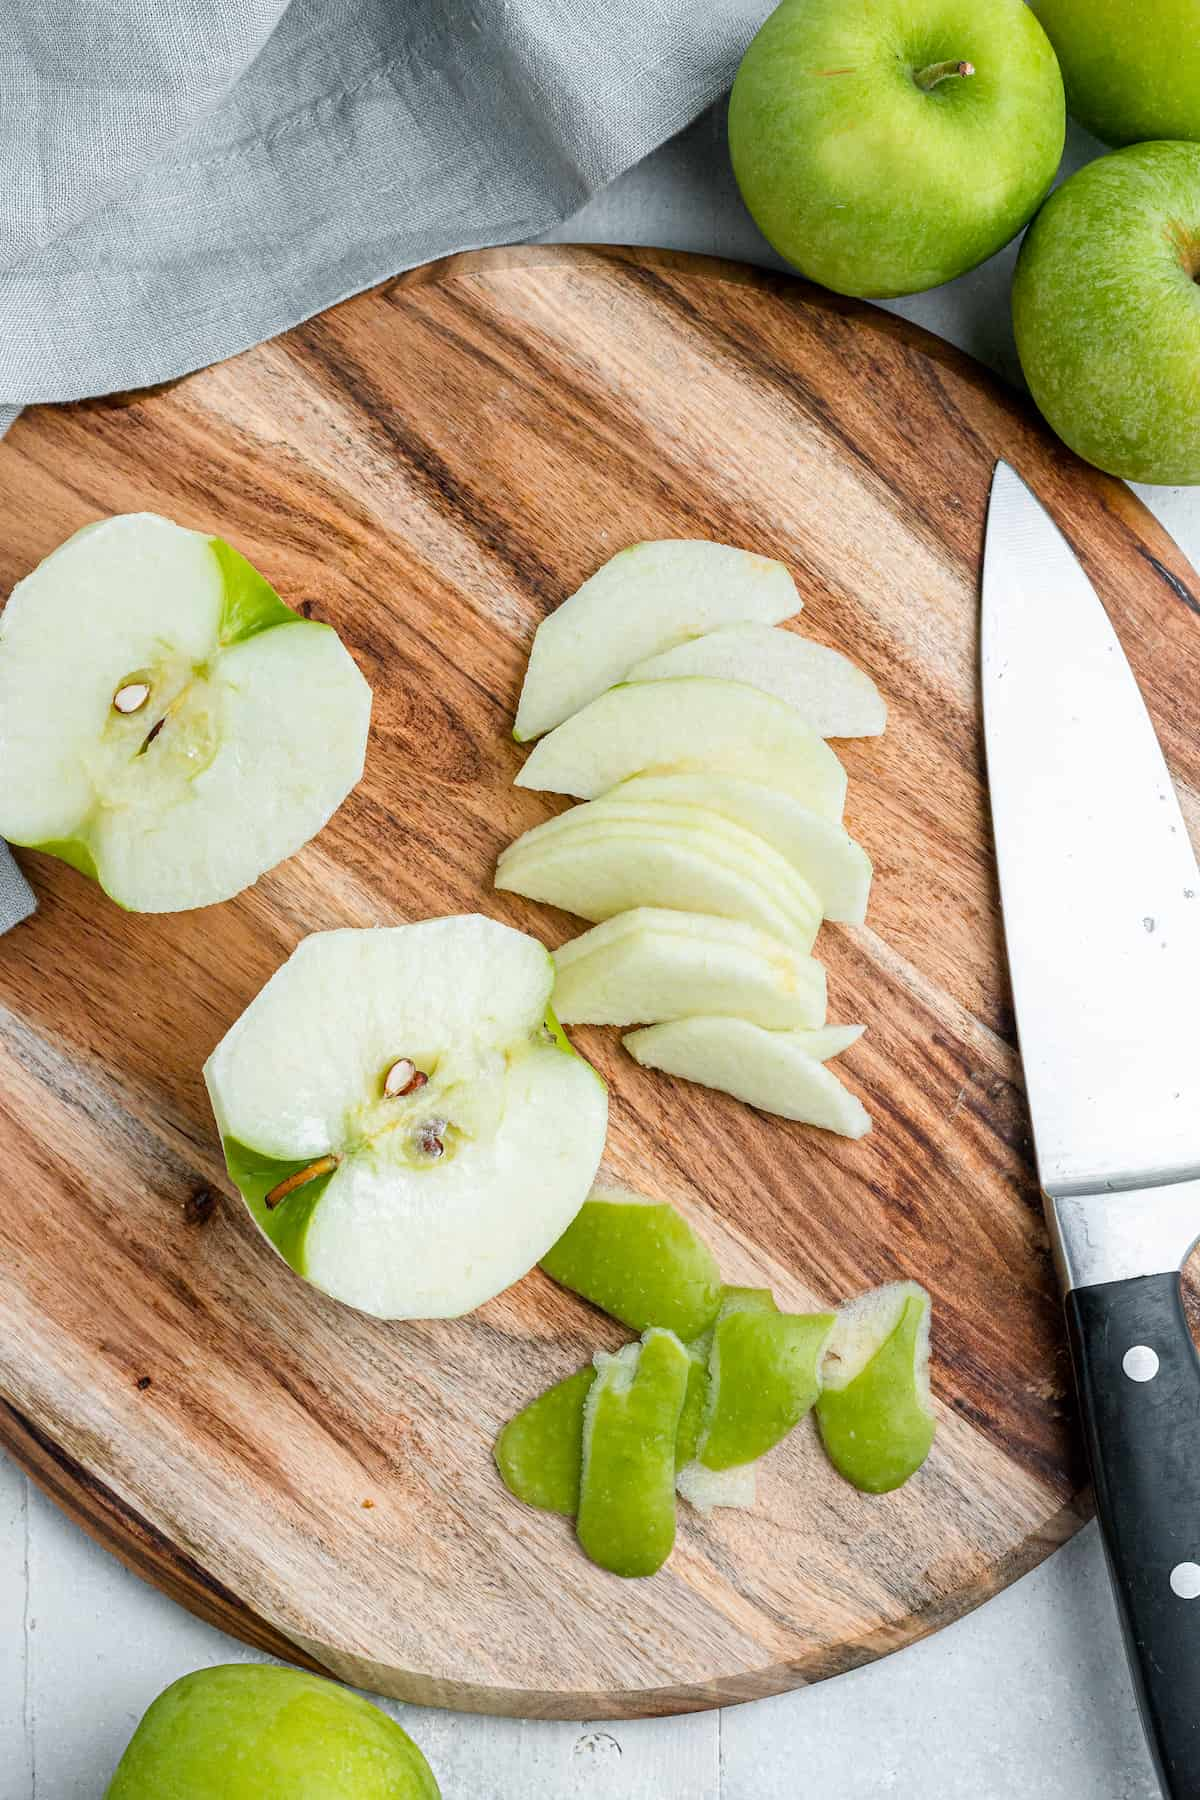 slicing green apples on a wooden cutting board